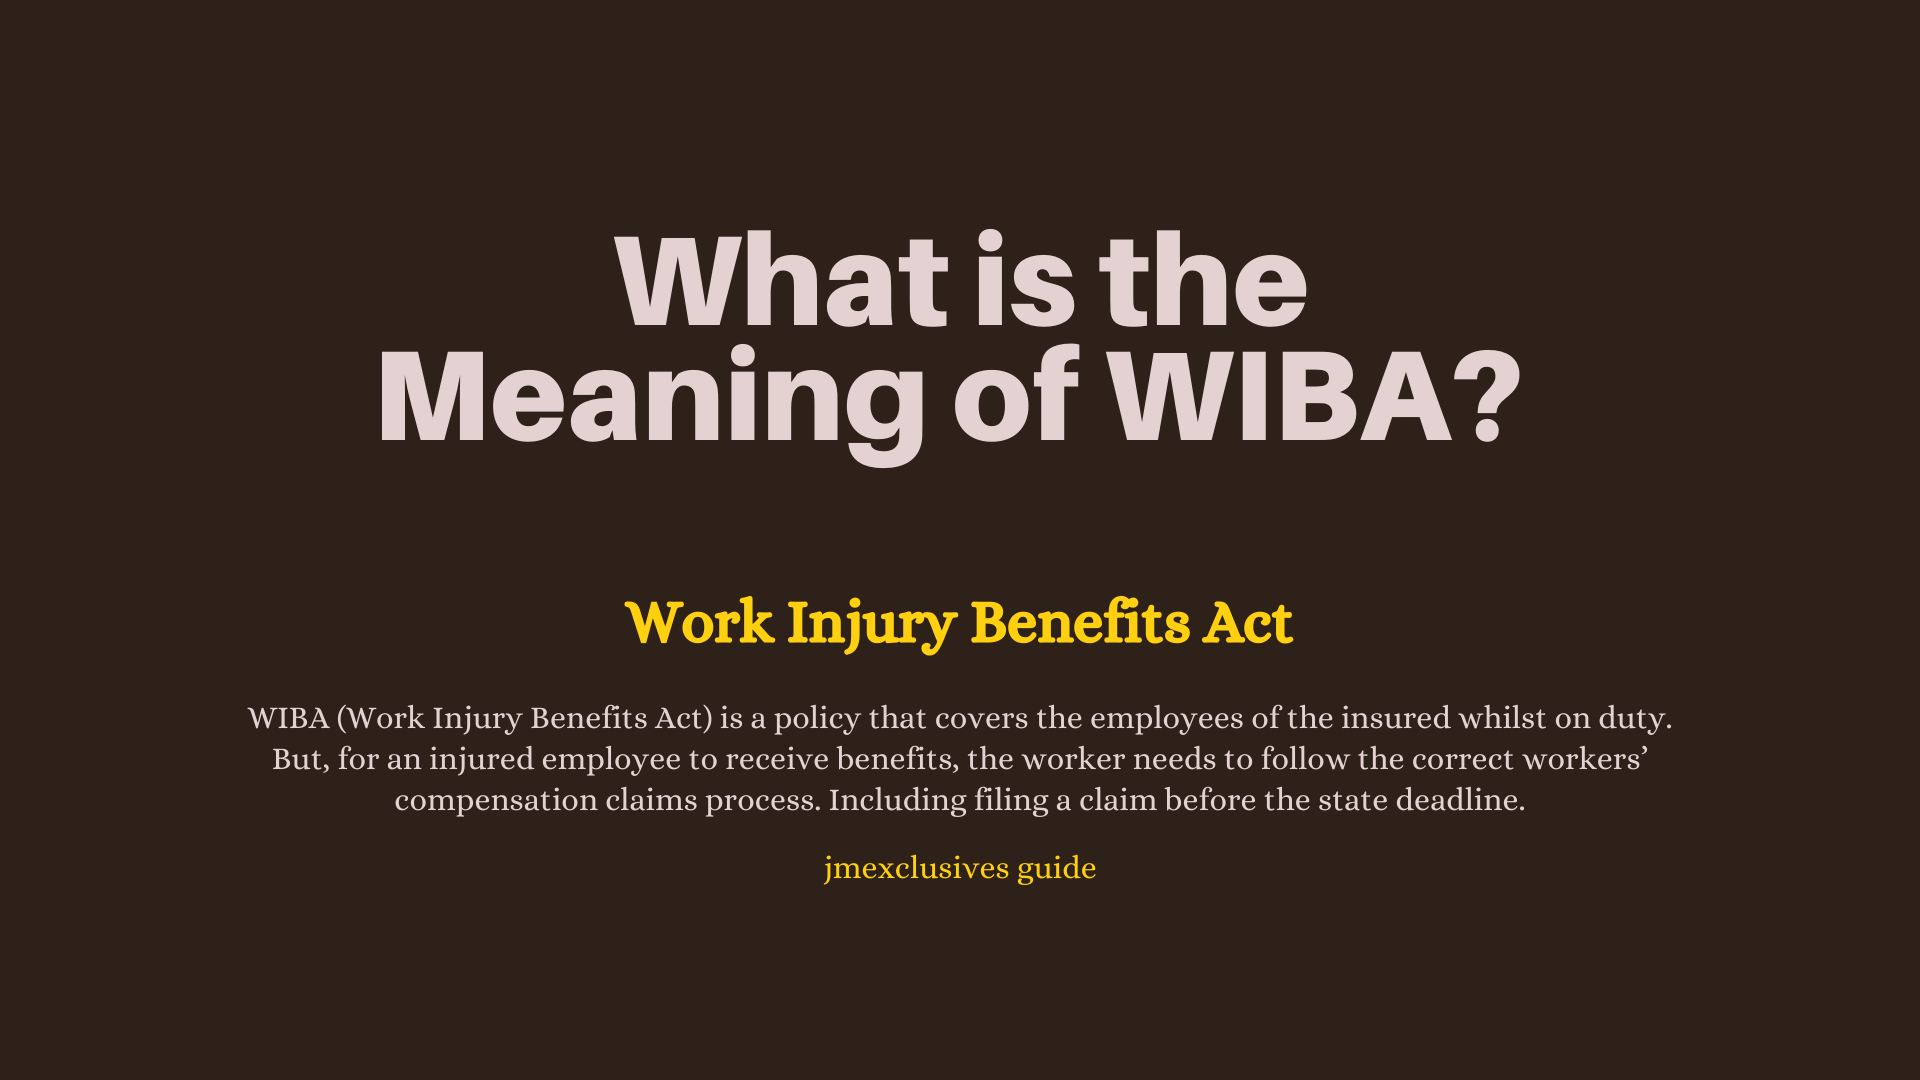 WIBA (Work Injury Benefits Act)